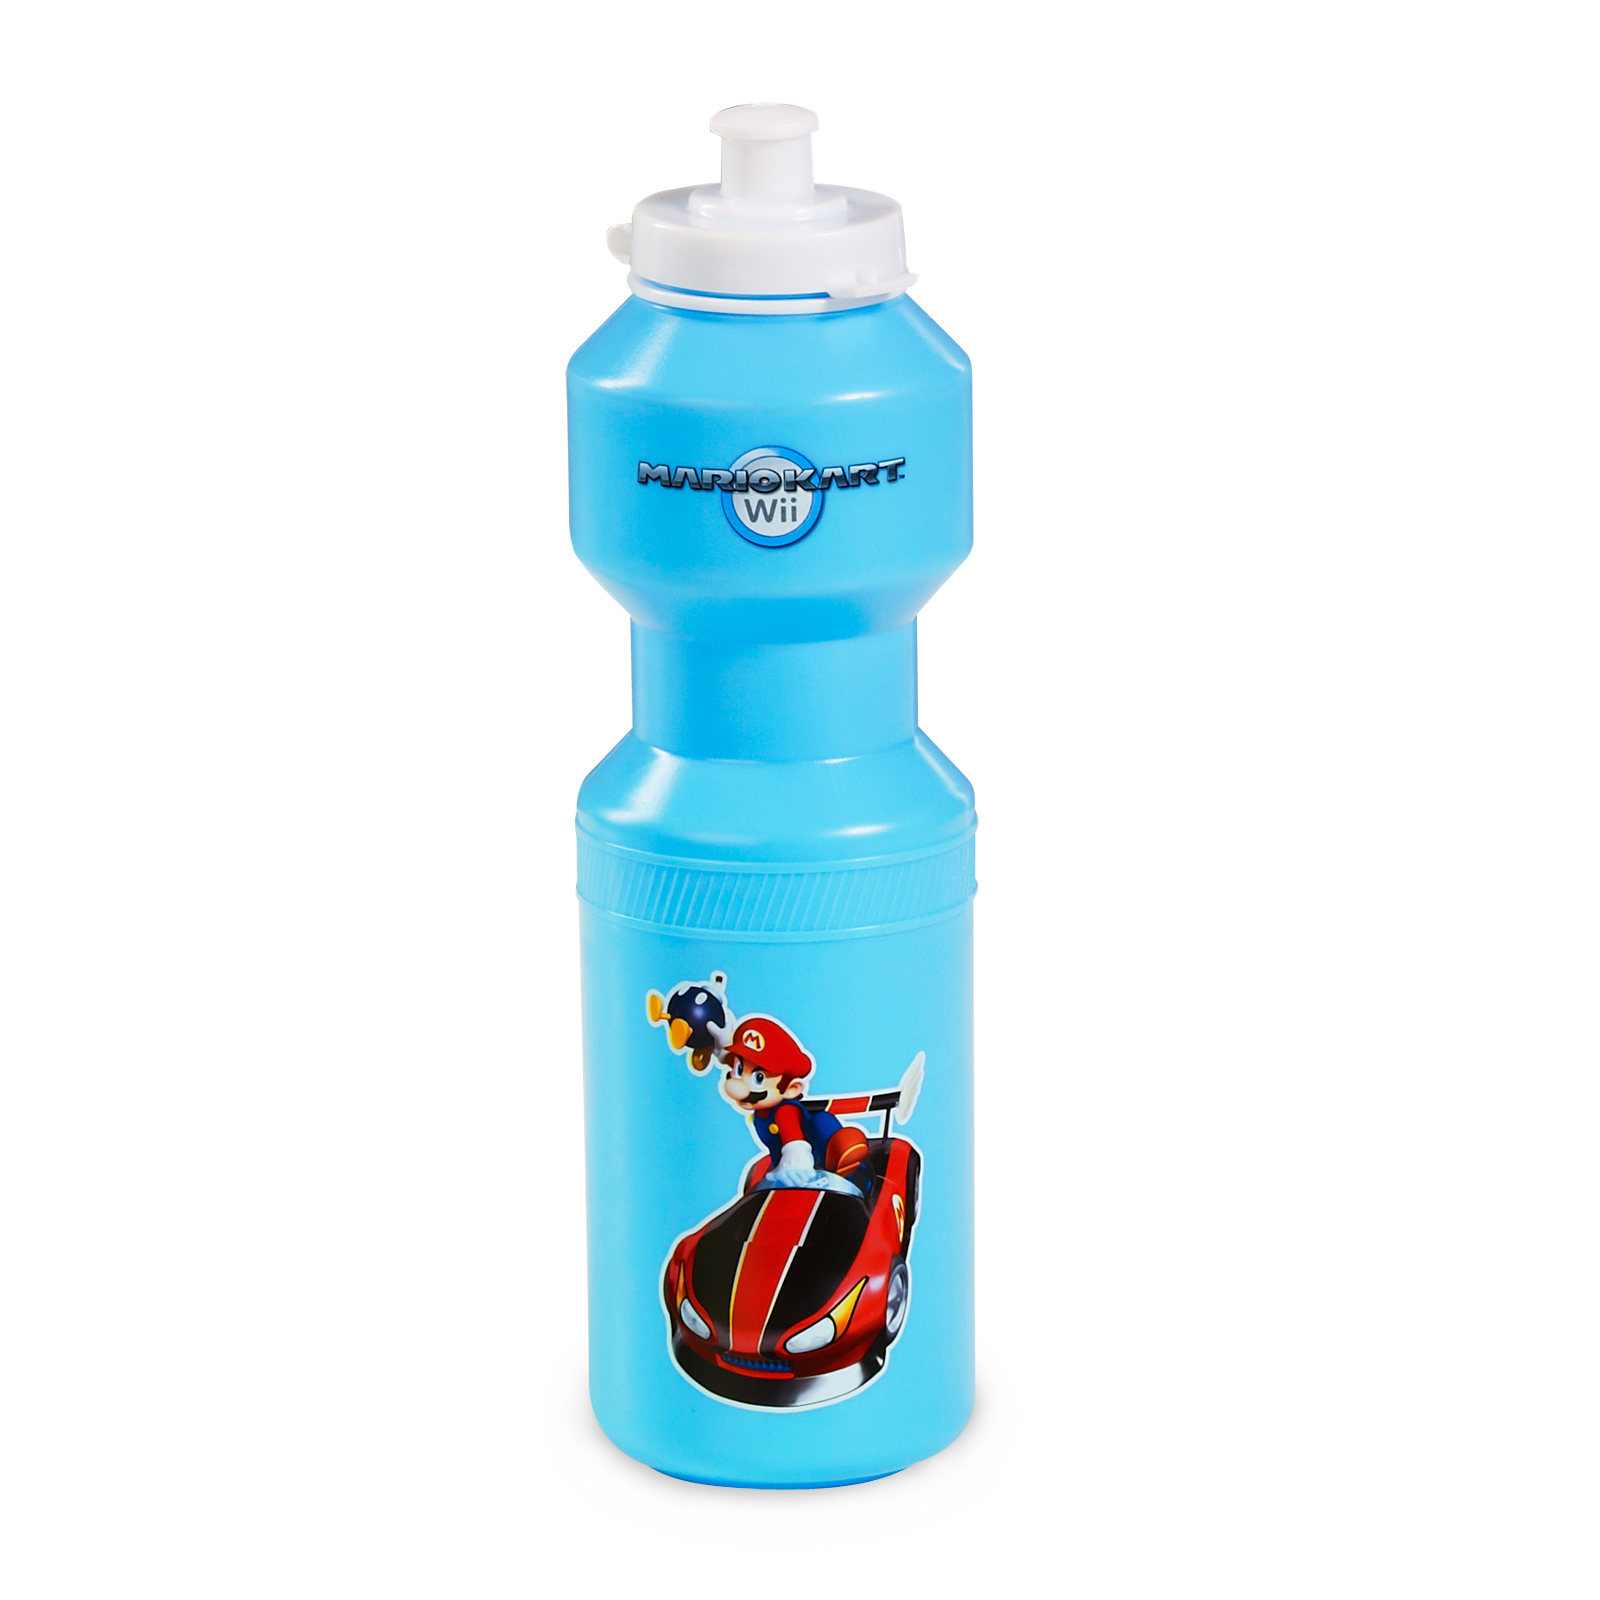 Birthday Express Mario Kart Wii Sports Bottles